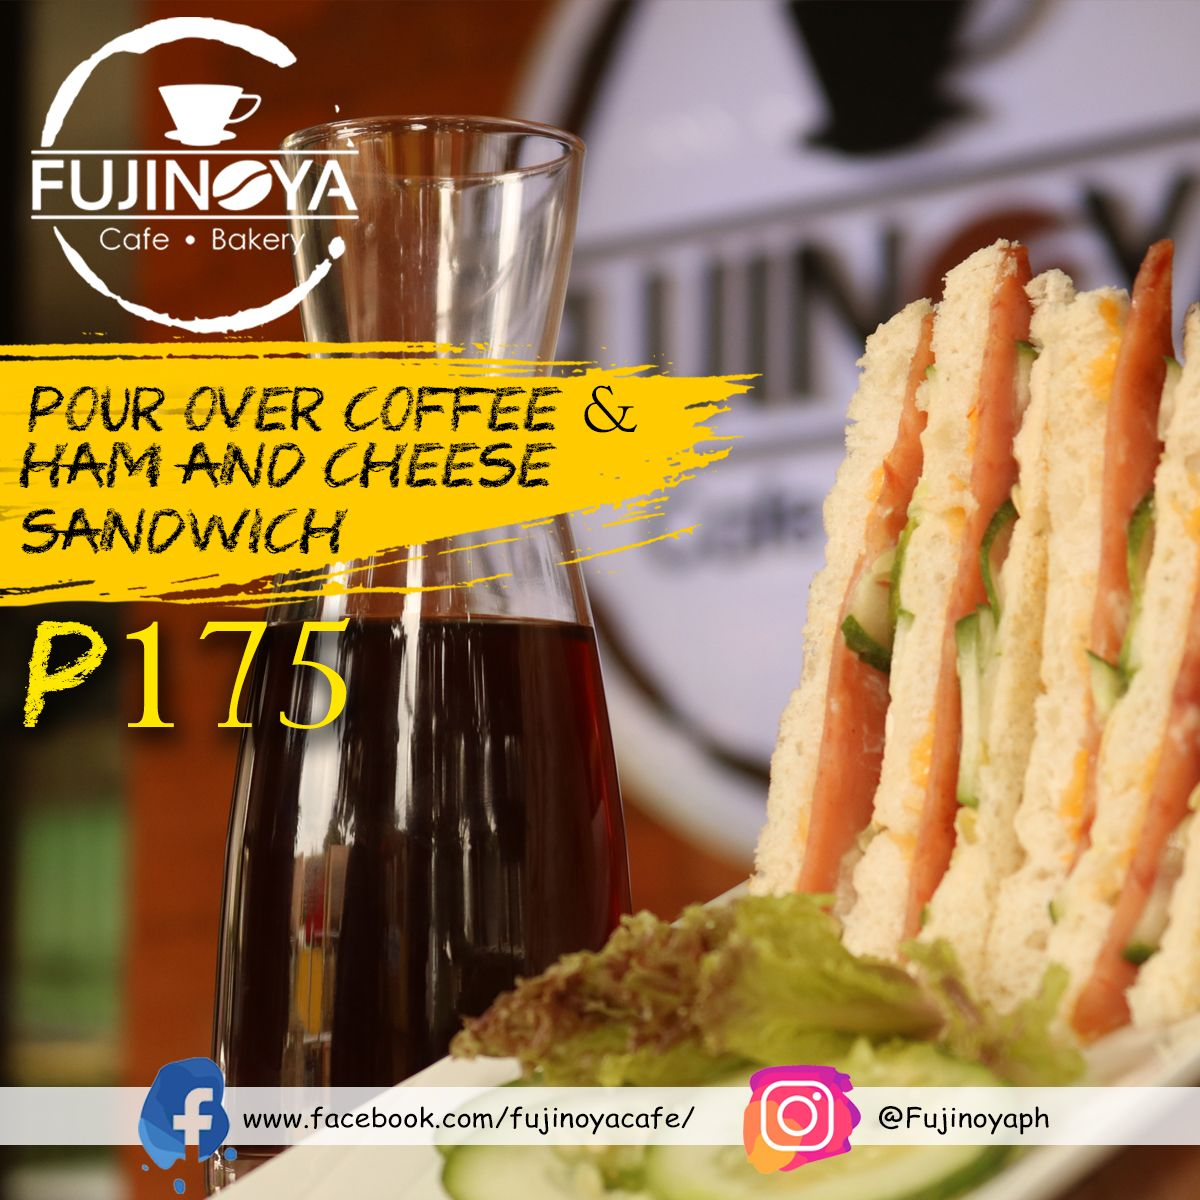 Try our new Japanese Style Sandwiches Konbi! You may choose from our Fluffy Egg & Cheese or Tasty Ham & Cheese Sandwich + a Pour Over Coffee for only P175! . . . #specialtycoffee #coffeeoftheday #shareyourkape ⠀ #coffeeaddict #thetravellingbarista #coffeeexample #cebucoffeepic.twitter.com/8CHMmjoymm